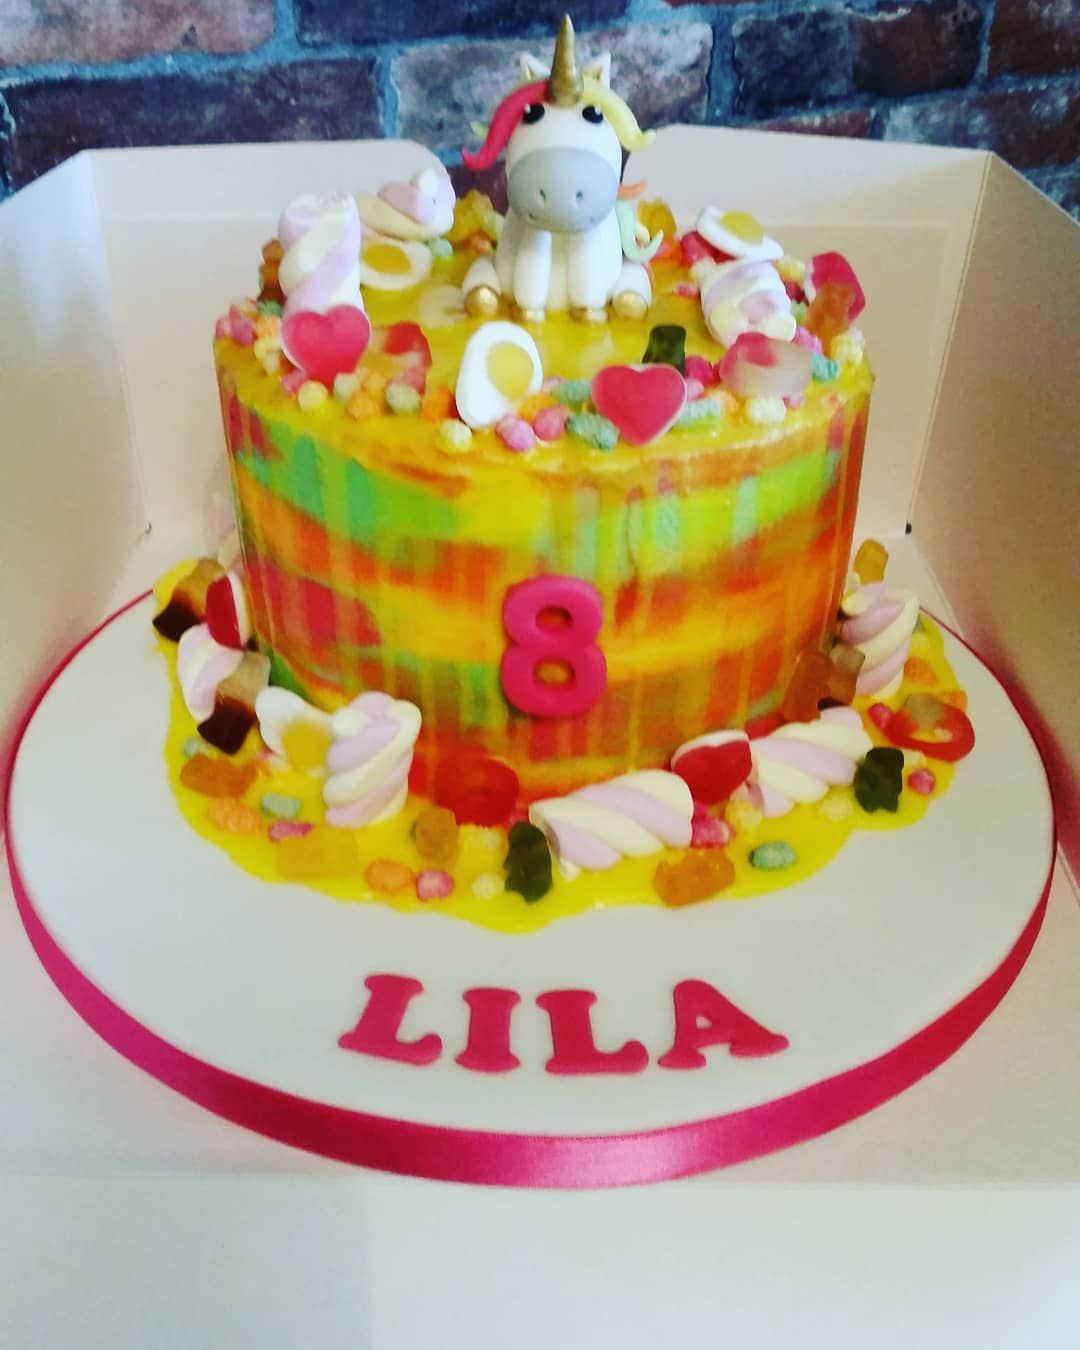 Pin By Helen On Childrens Birthday Cakes Kids Cakes Pinterest